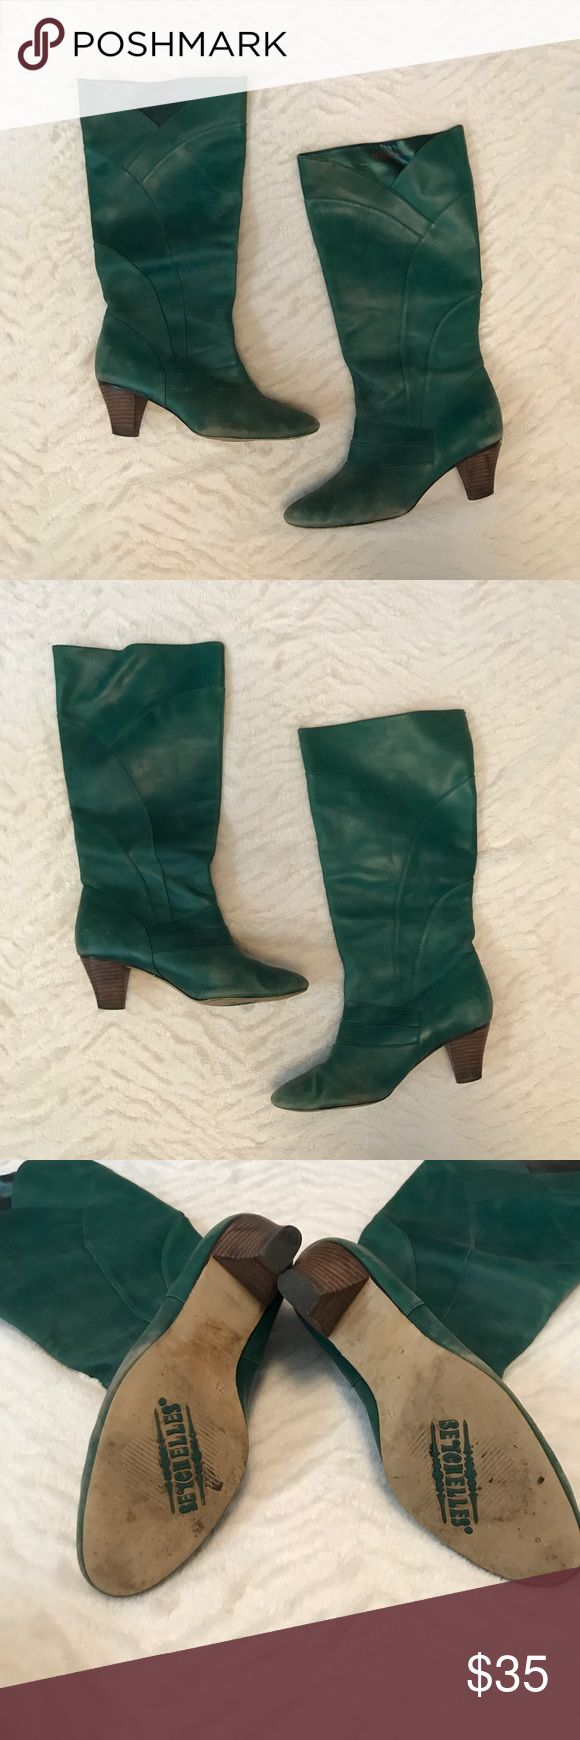 Turquoise Seychelles Boots Turquoise Seychelles boots size 7 1/2. In pre-loved condition. Always got tons of compliments when wearing these beauties! Please ask any and all questions. No trades or modeling. Offers welcome! Seychelles Shoes Heeled Boots